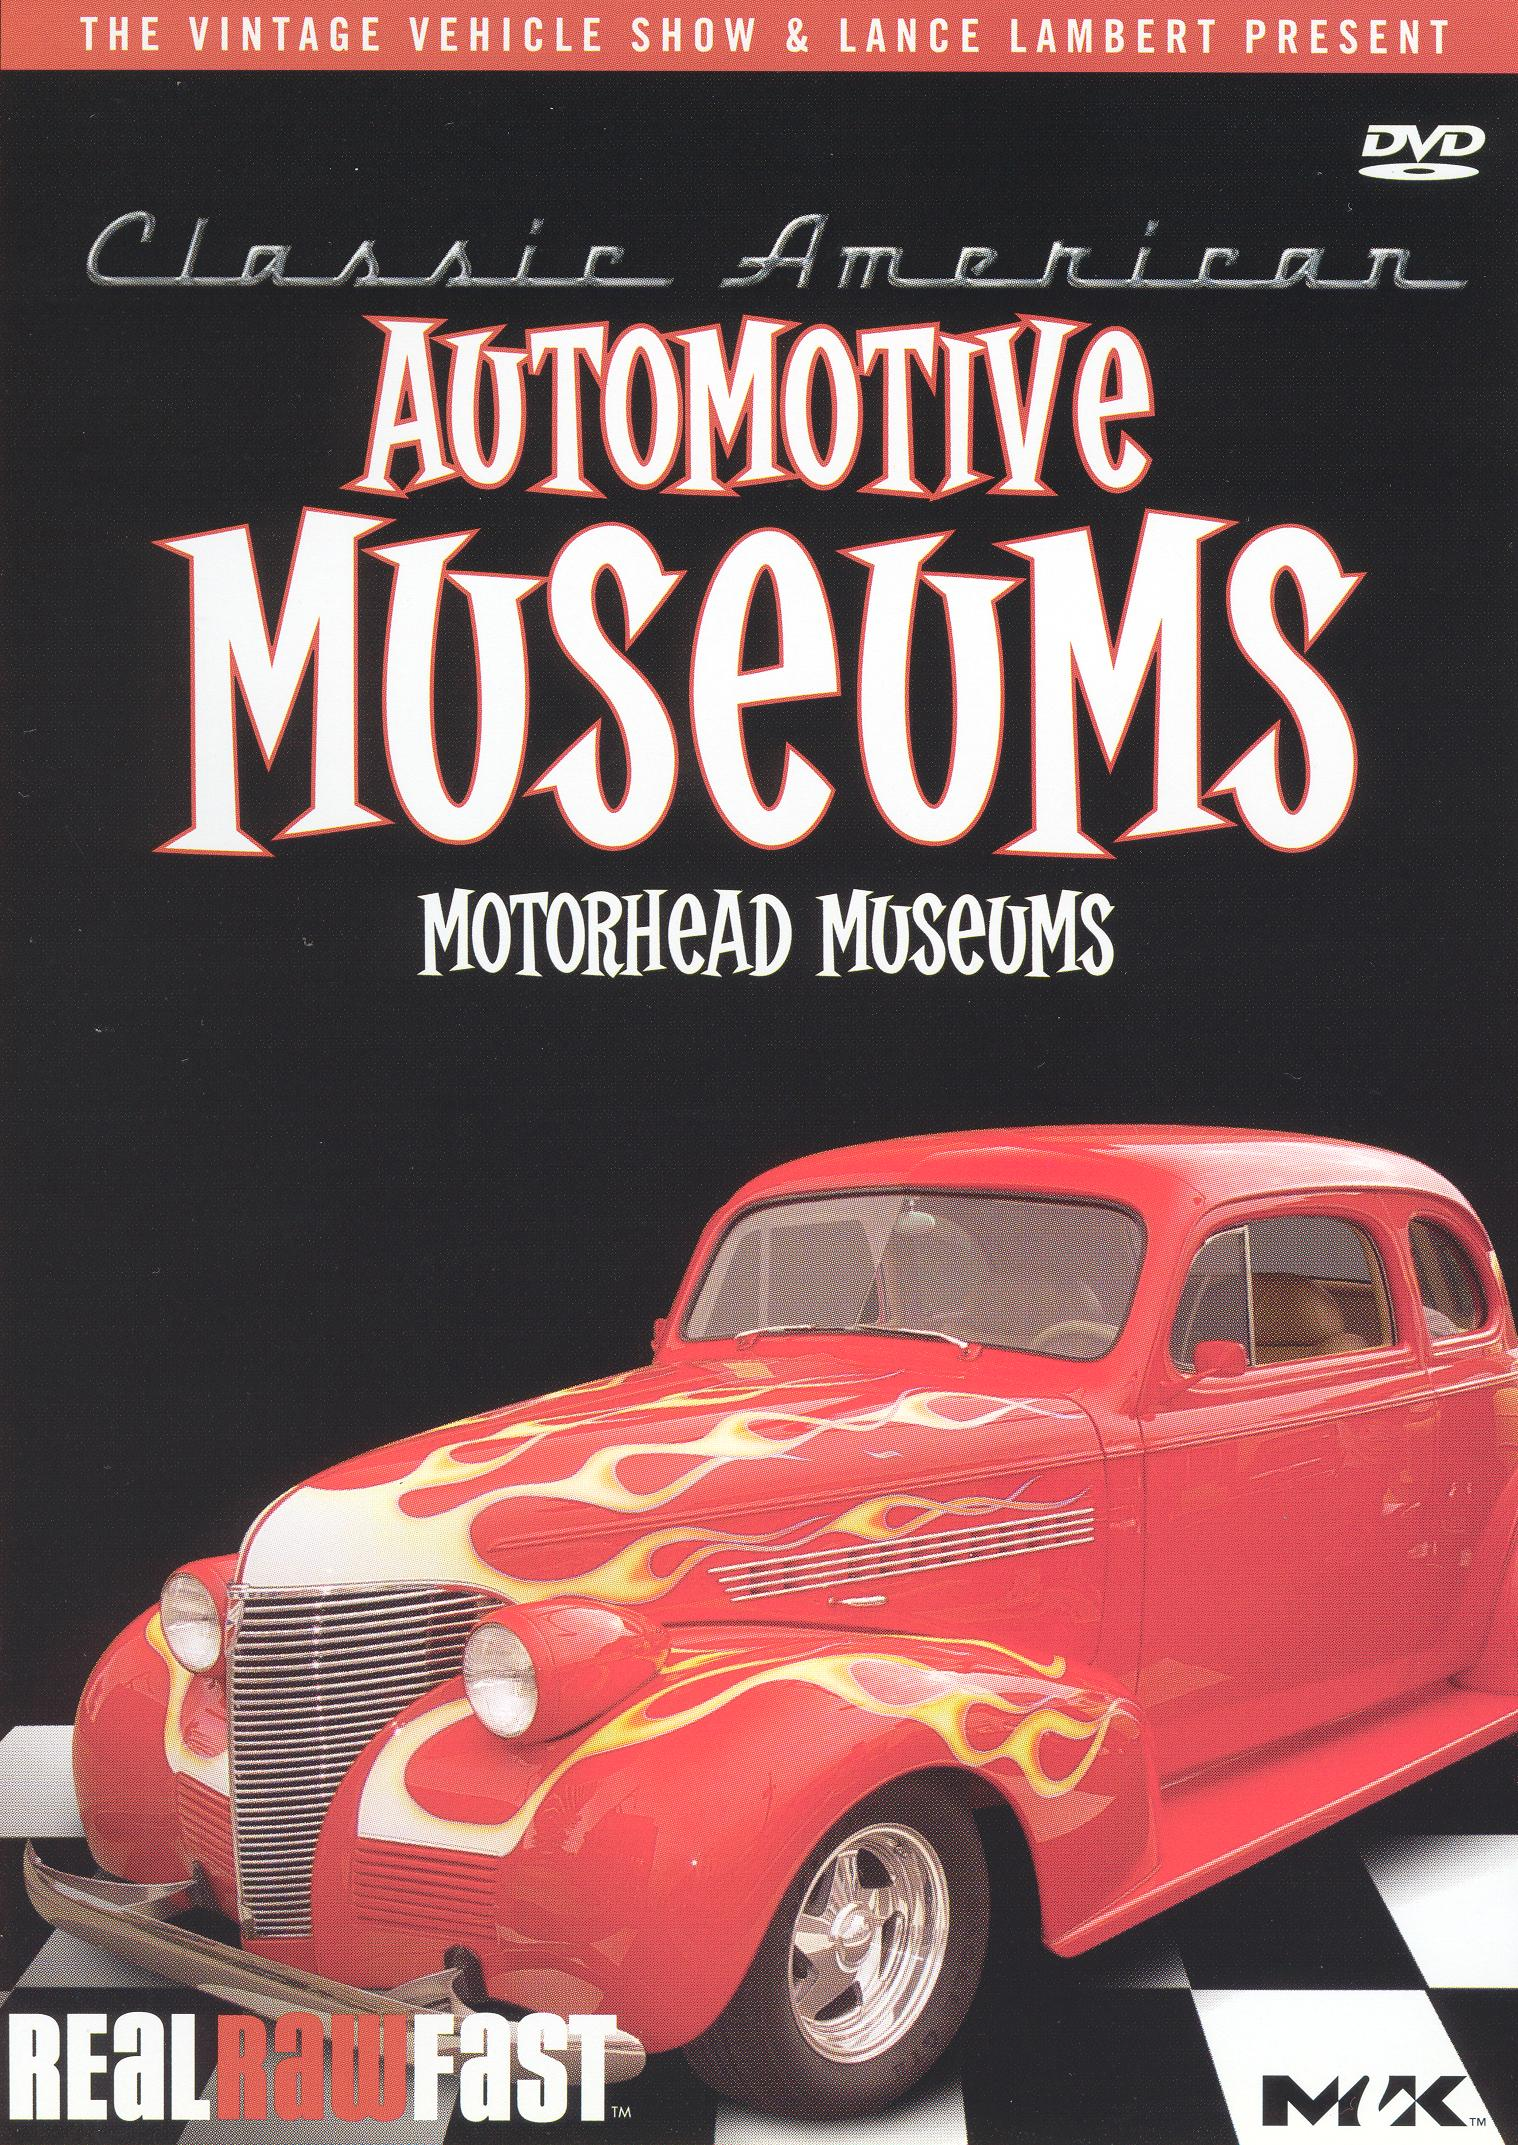 Classic American Automotive Museums: Motorhead Museums